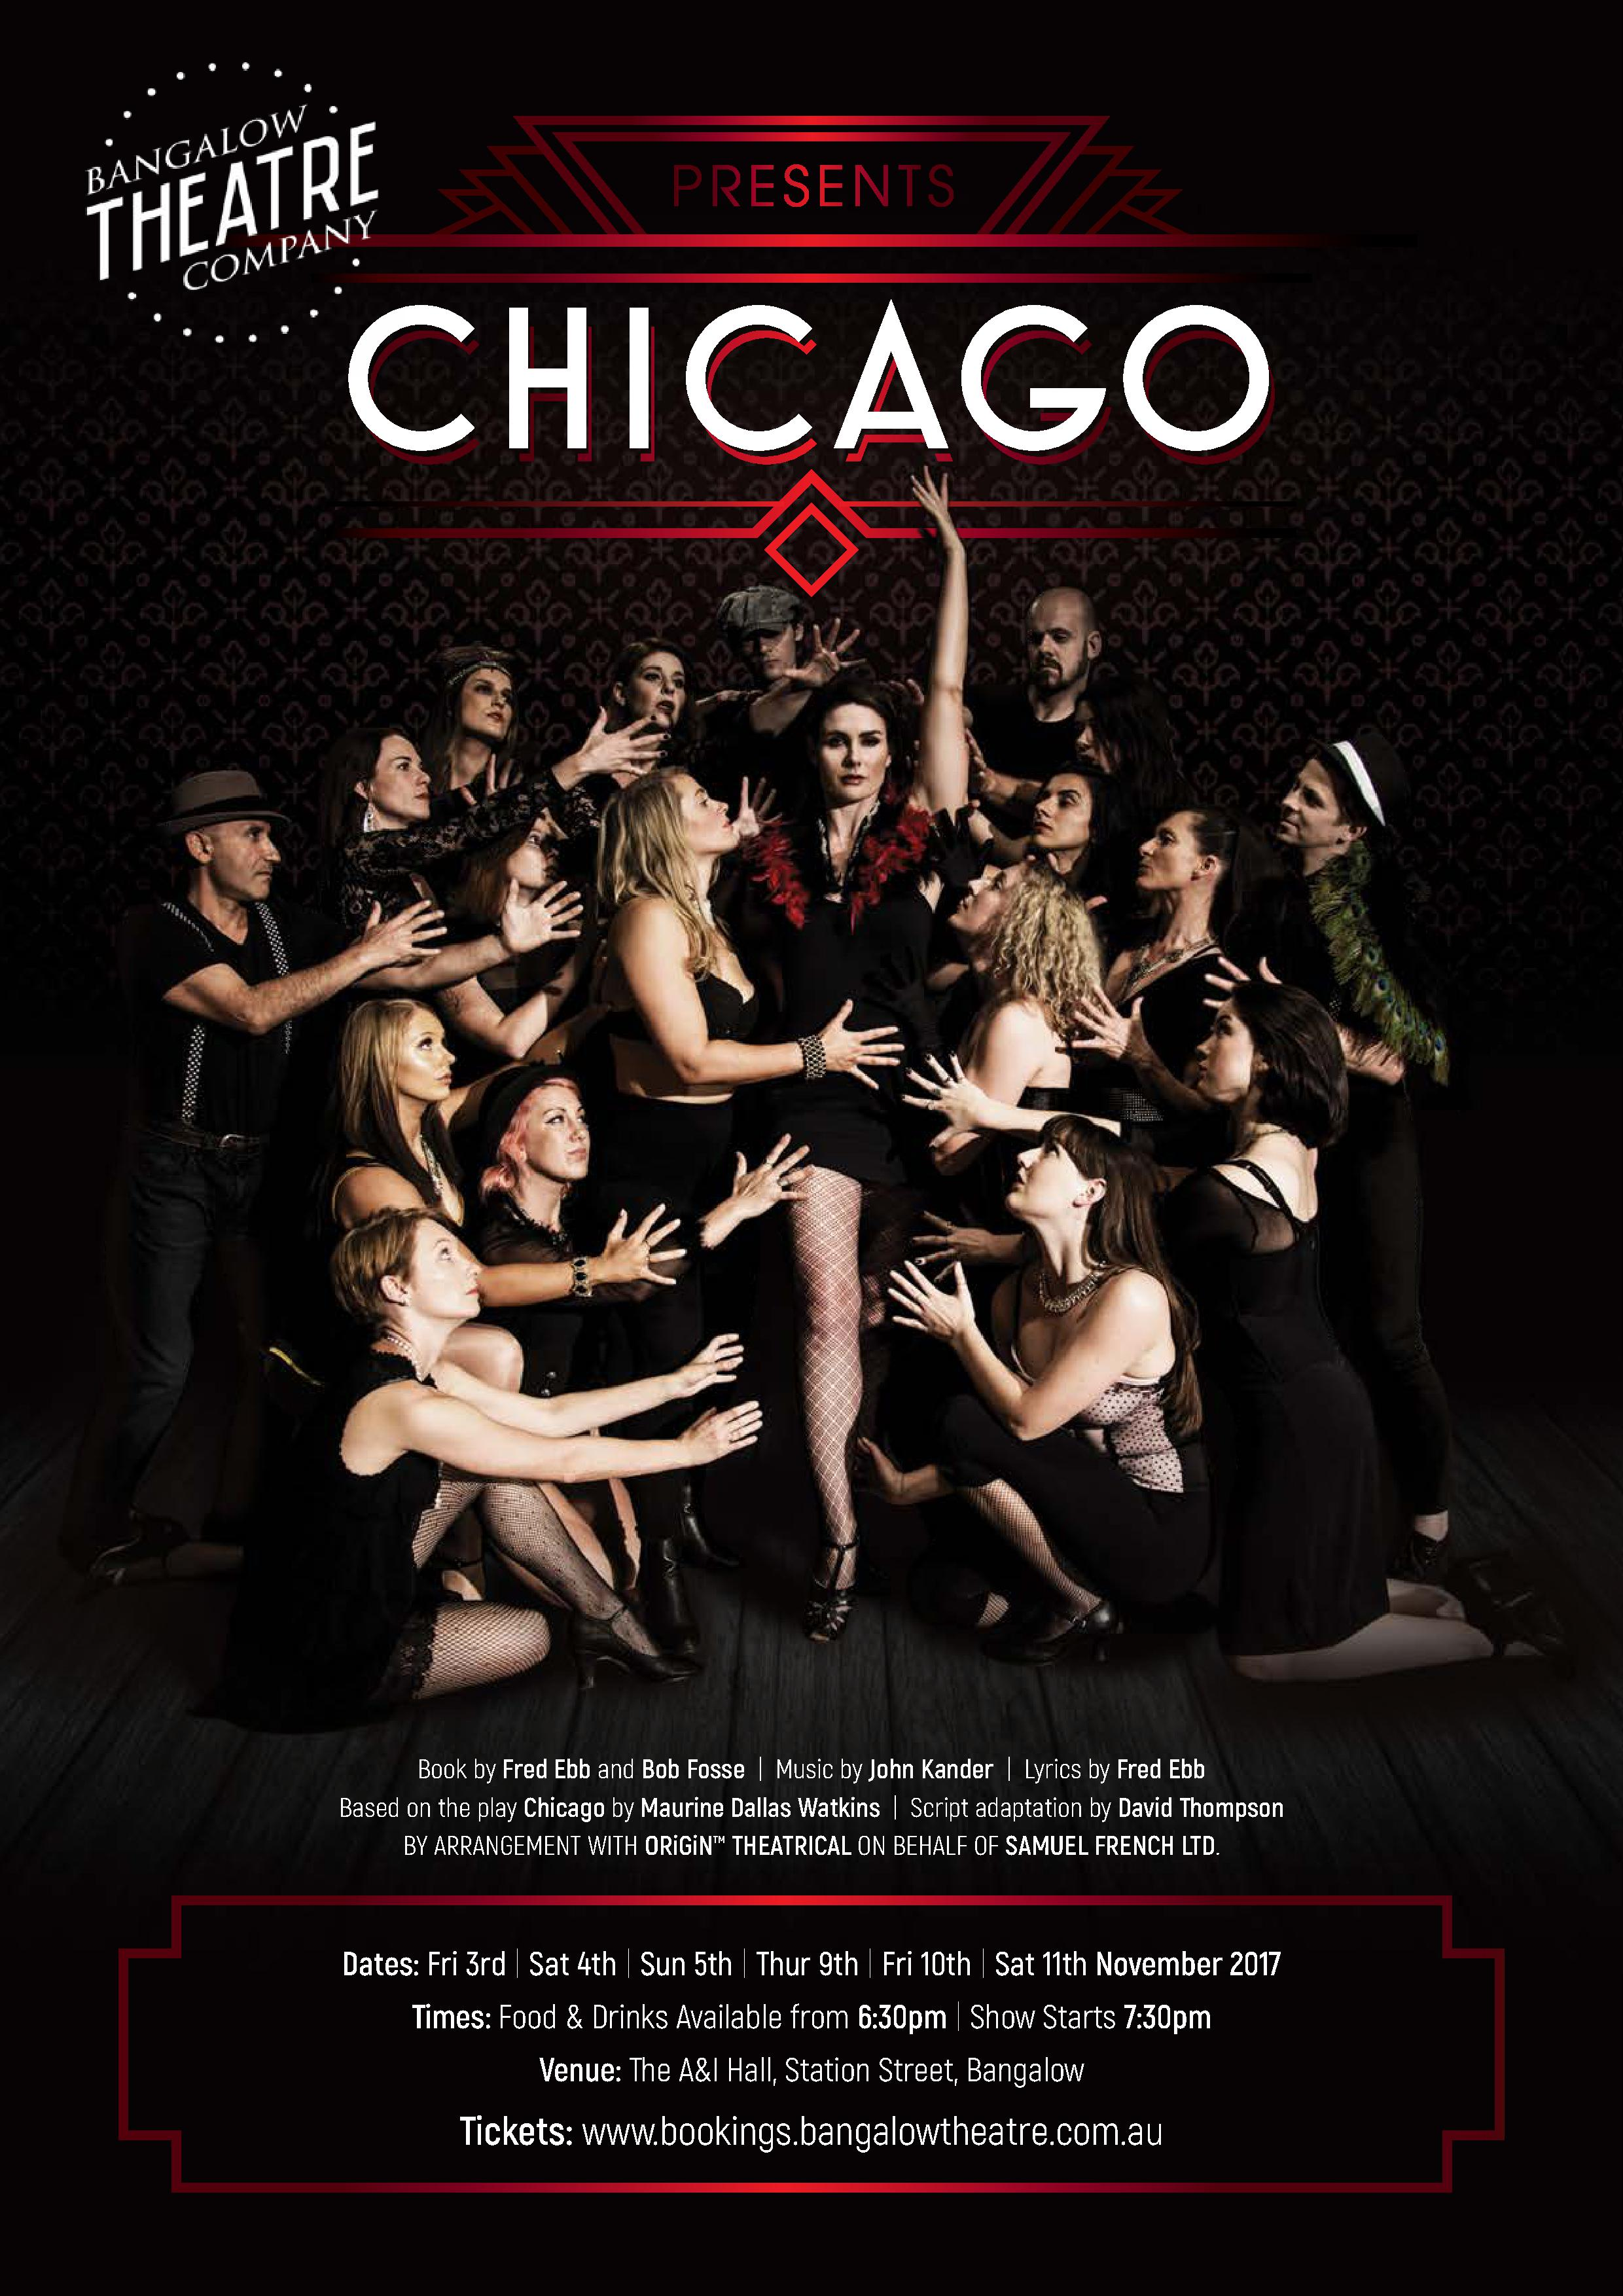 Chicago - A4 Poster 4-2.jpg